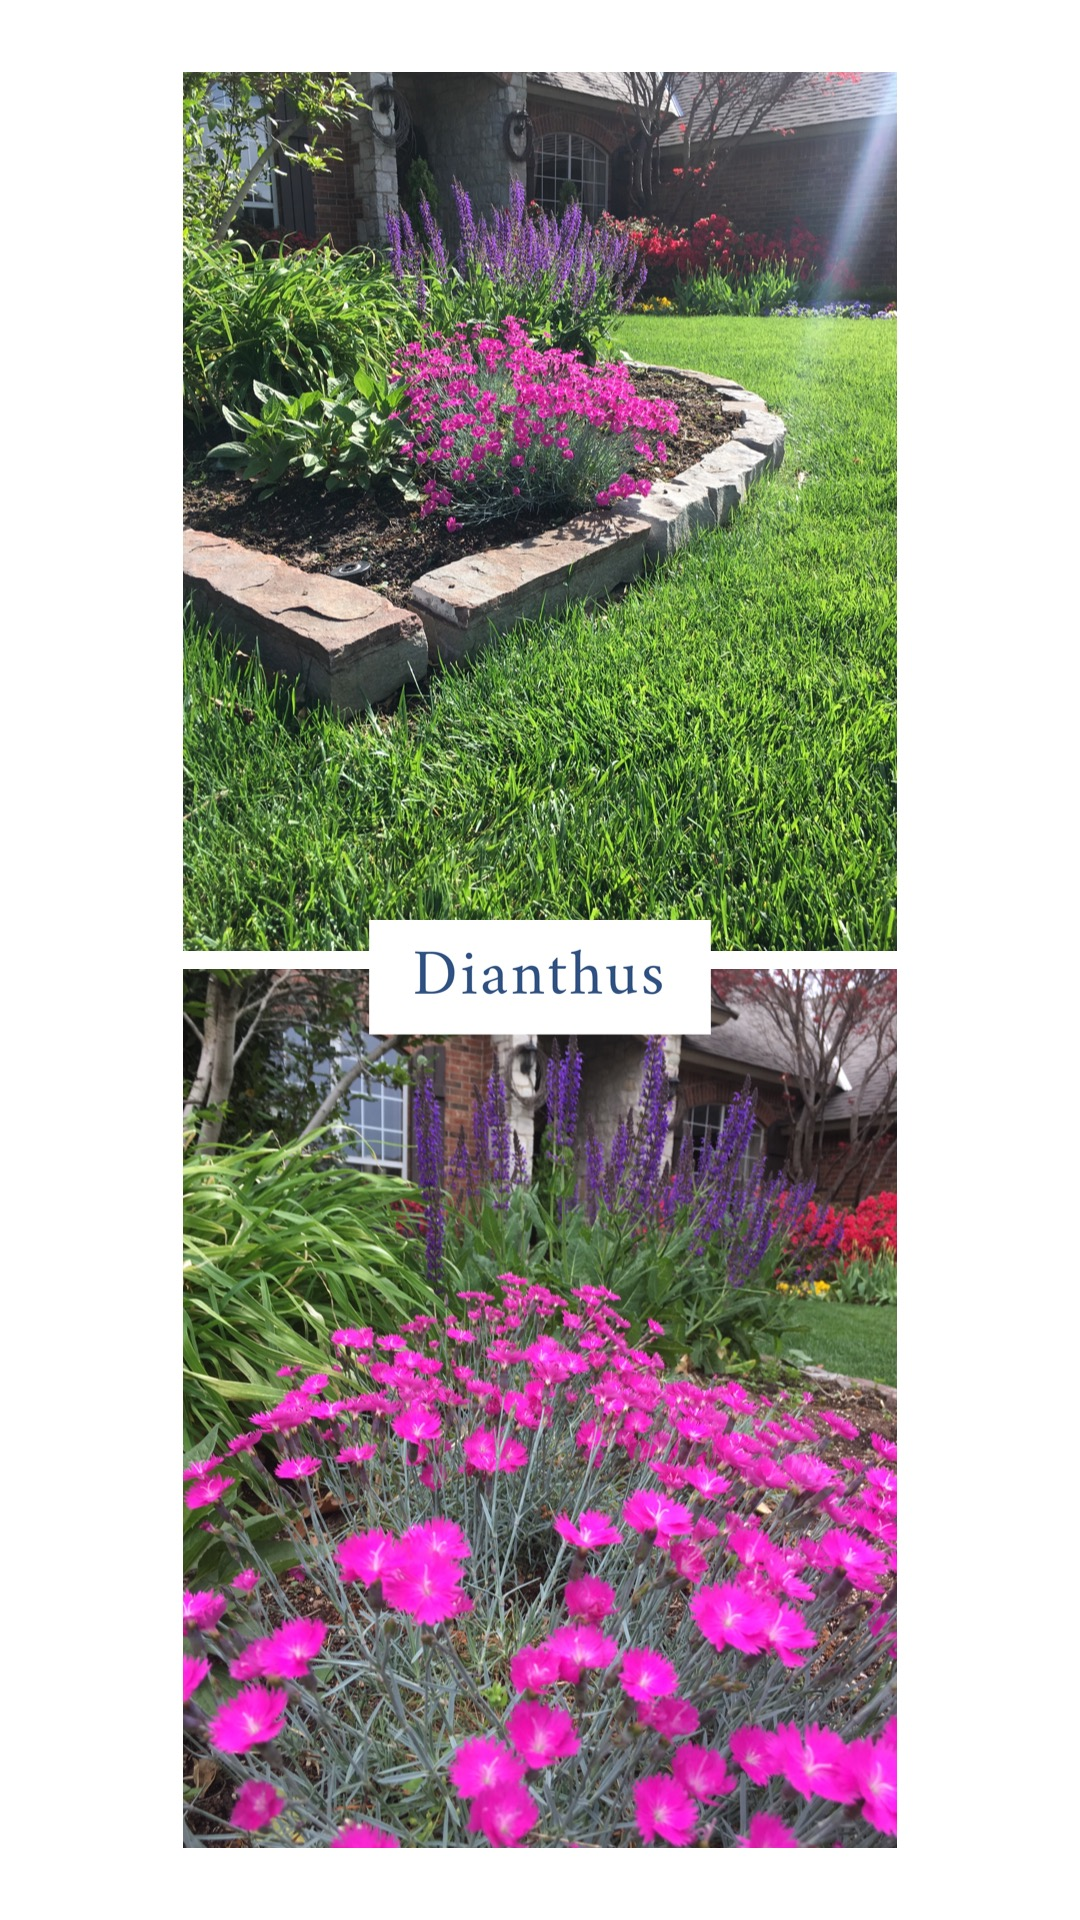 "Dianthus (Dianthus).  It works well as a border, in small groupings, around boulders or as a single plant reaching 10-15"" tall with a spread of 12-24"". They bloom in late spring in rose, pink, white, red. They like full sun but will take some dappled shade or afternoon shade. Just like creeping phlox, they are a cool season lover. They will grow in most soils, but prefer alkaline soils — waterlogged soil will cause crown and root rot. Heavy mulching near the crown of the plant can be detrimental. Late March and into May is the peak bloom time. Light feeding in the spring with a complete fertilizer of phosphorus, potassium and low nitrogen is recommended. Other an occasional aphid or powdery mildew issue, they do not have many problems. There are more than 300 varieties of dianthus to choose from. My all-time favorite is 'Firewitch'. It has a silver-green foliage and with a vibrant pink bloom."